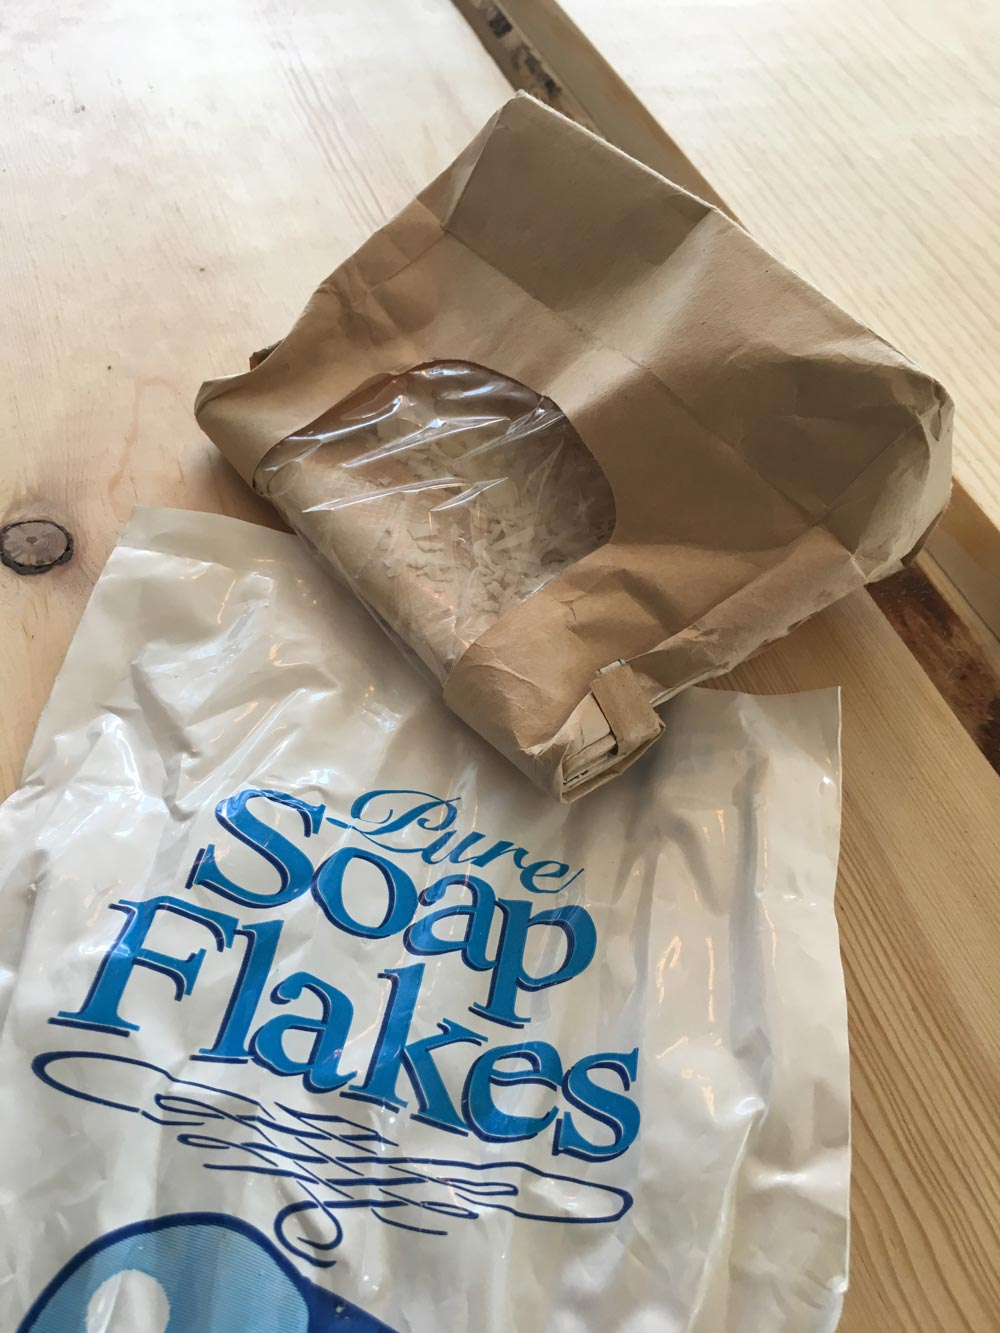 Can Soap Flakes Go Bad?